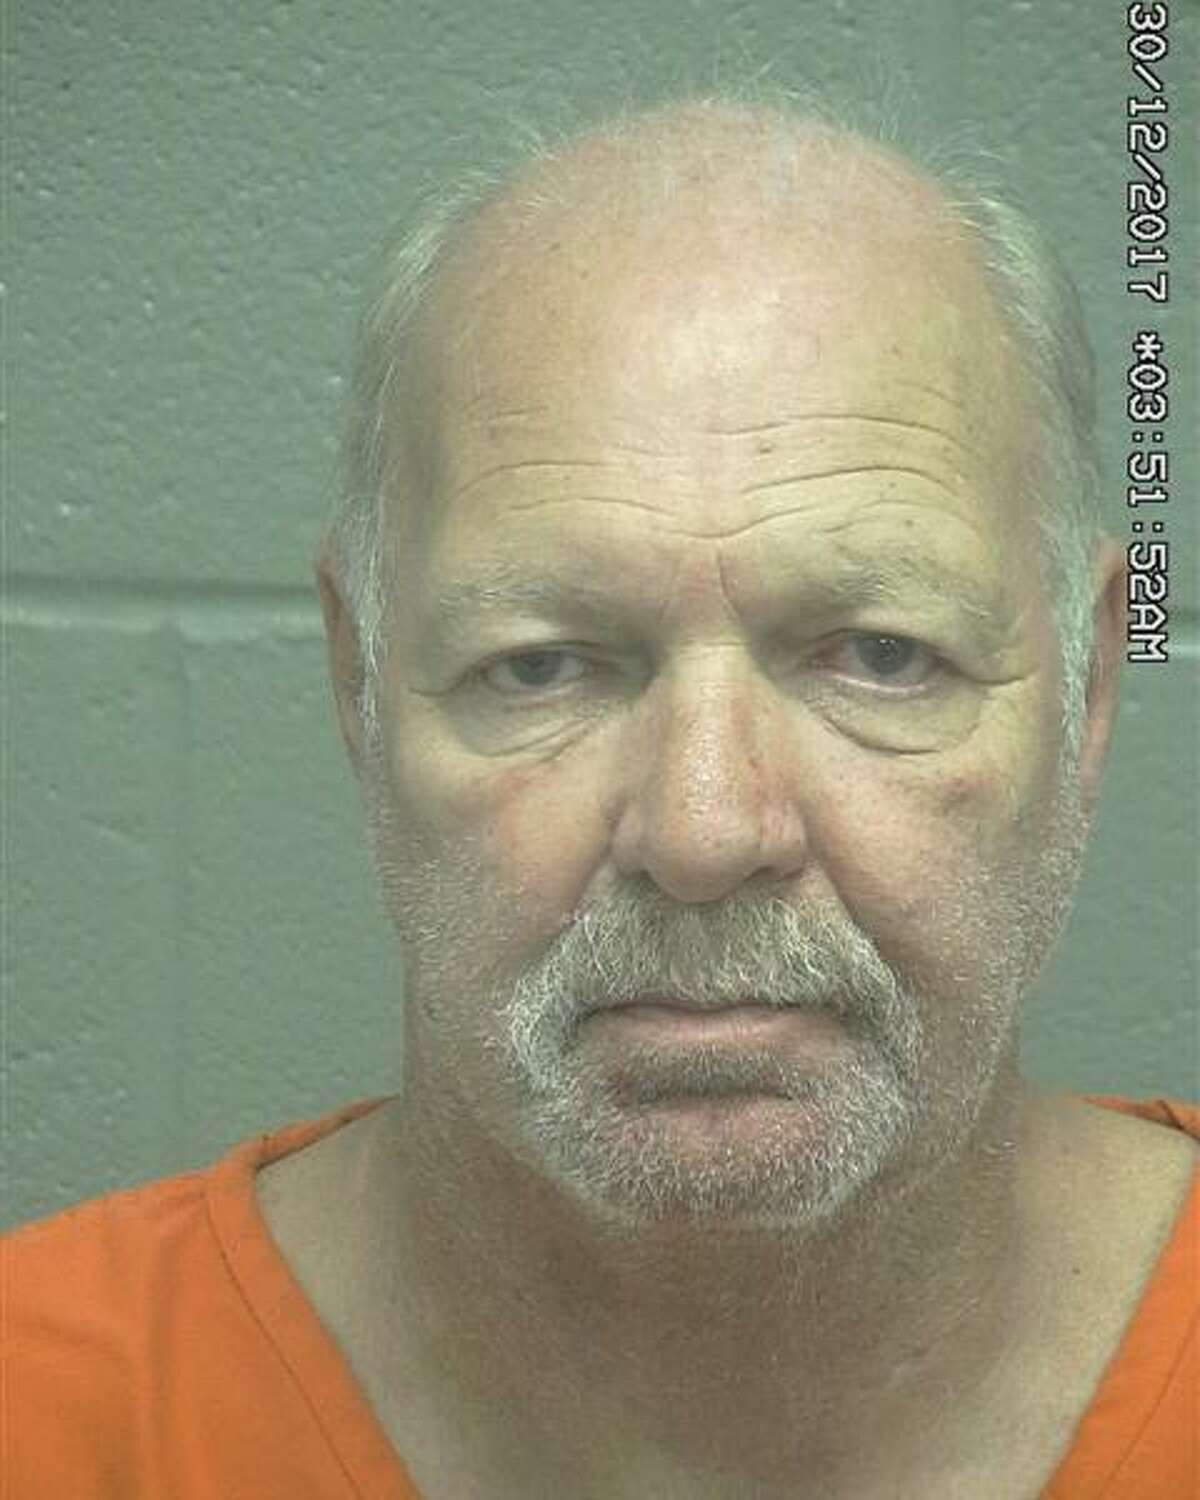 Michael Frank Bell, 61,was arrested Dec. 30 after allegedly pointing a gun during the commission of an assault, according to court documents.